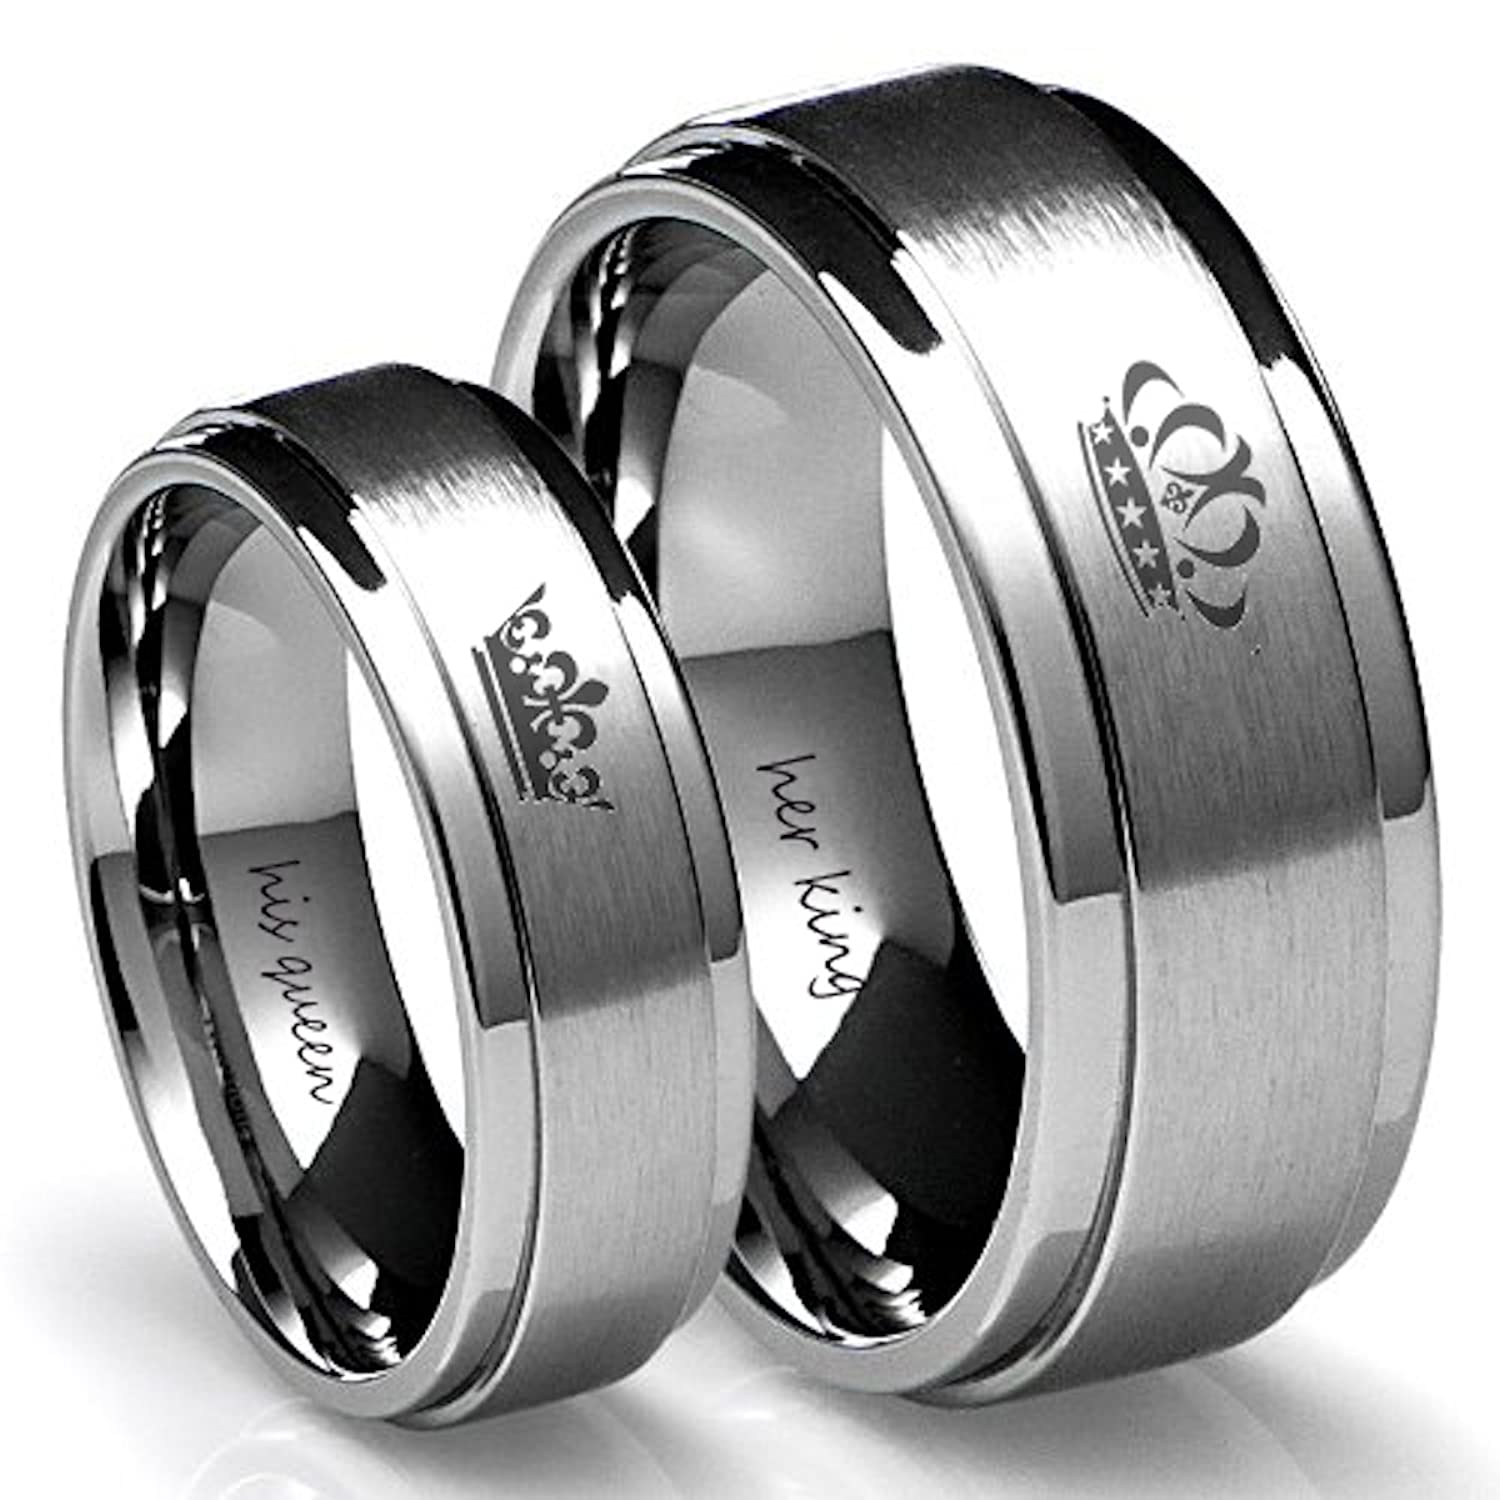 Amazon.com: King and Queen Silver Couples Ring Set (Women\'s Queen ...